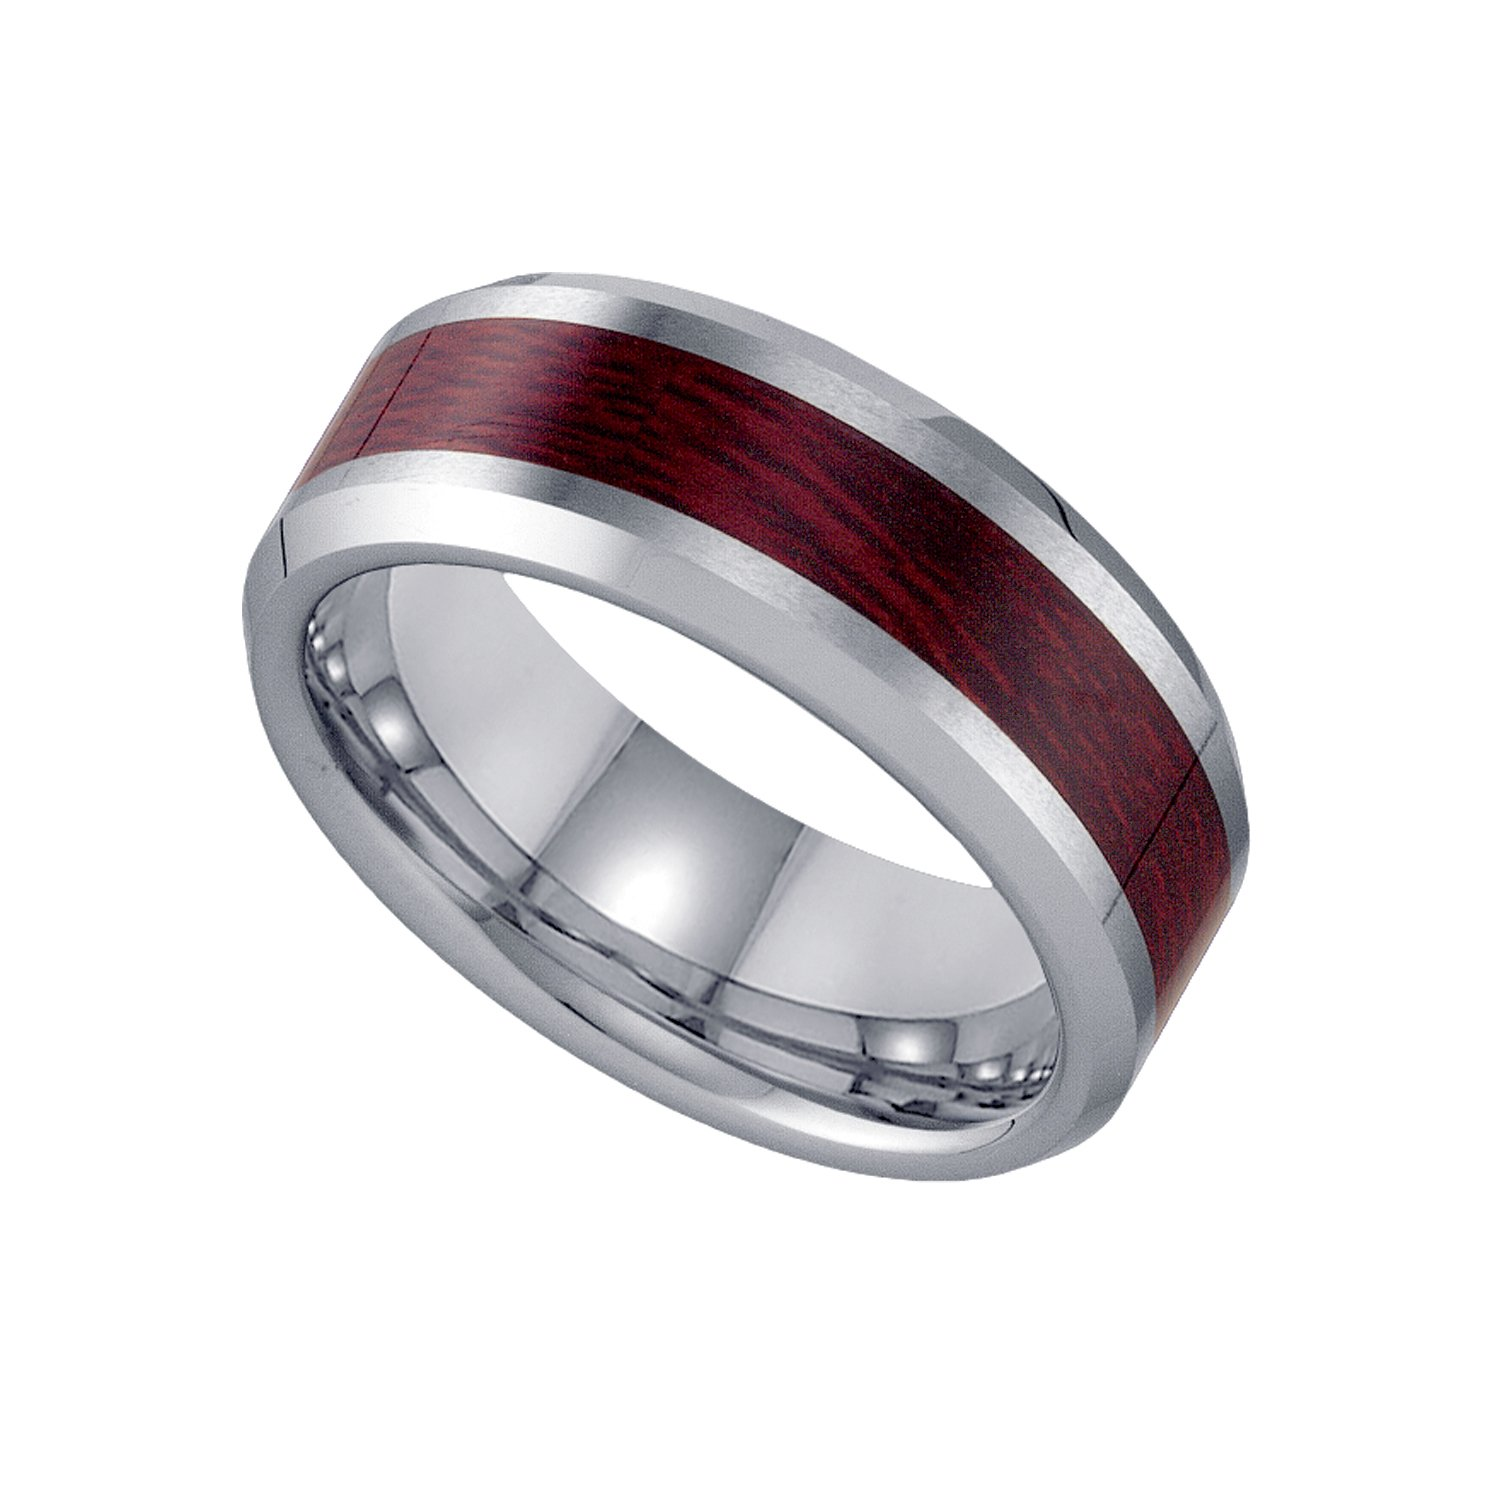 Jewels By Lux Tungsten Wooden Inlay Beveled Edges Mens Comfort-fit 8mm Wedding Anniversary Band Ring - Size 9